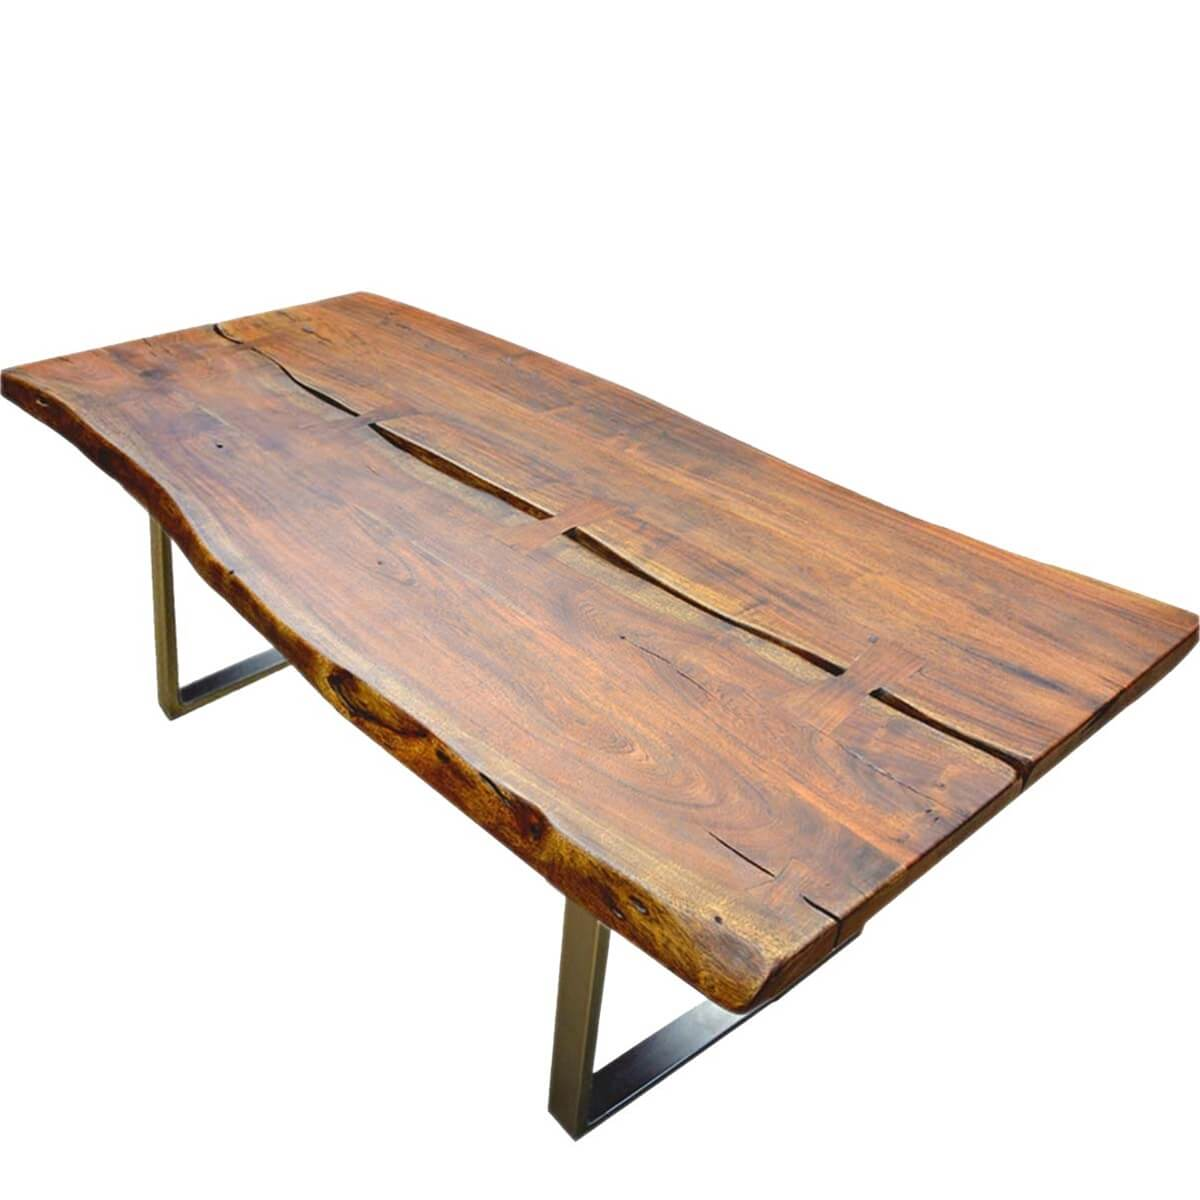 Live Edge Acacia Wood   Iron Rustic Large Dining Table. Edge Acacia Wood   Iron Rustic Large Dining Table